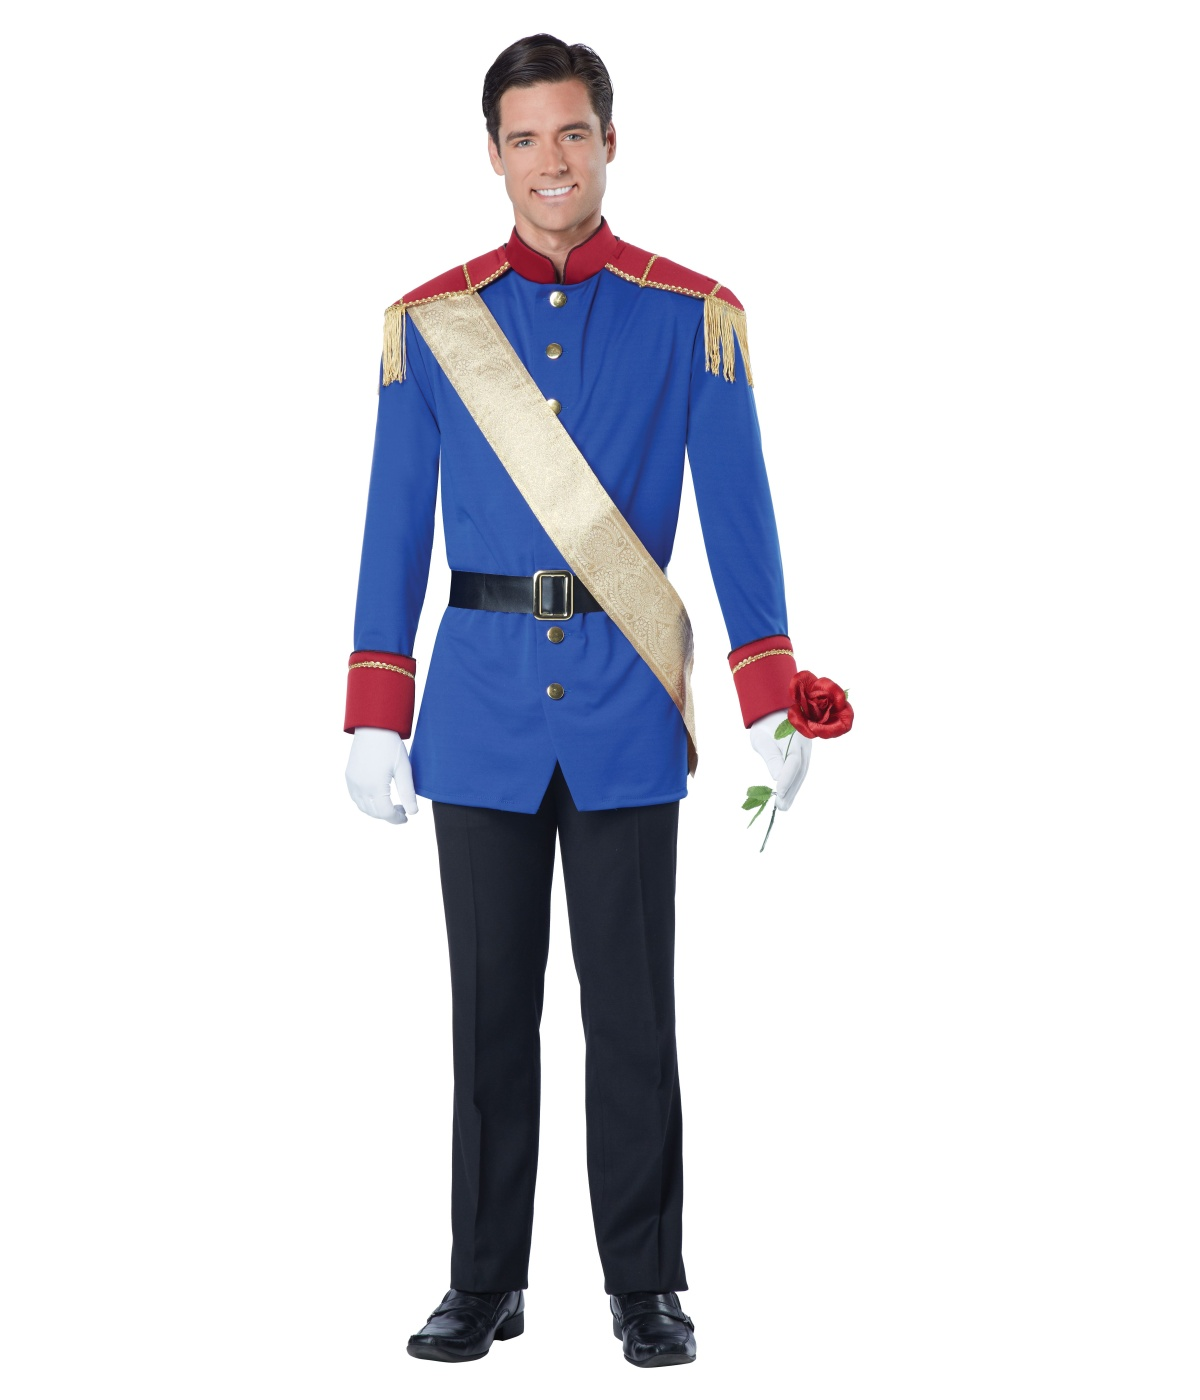 sc 1 st  Halloween Costumes & Storybook Prince Charming Man Costume - Fairy Costumes